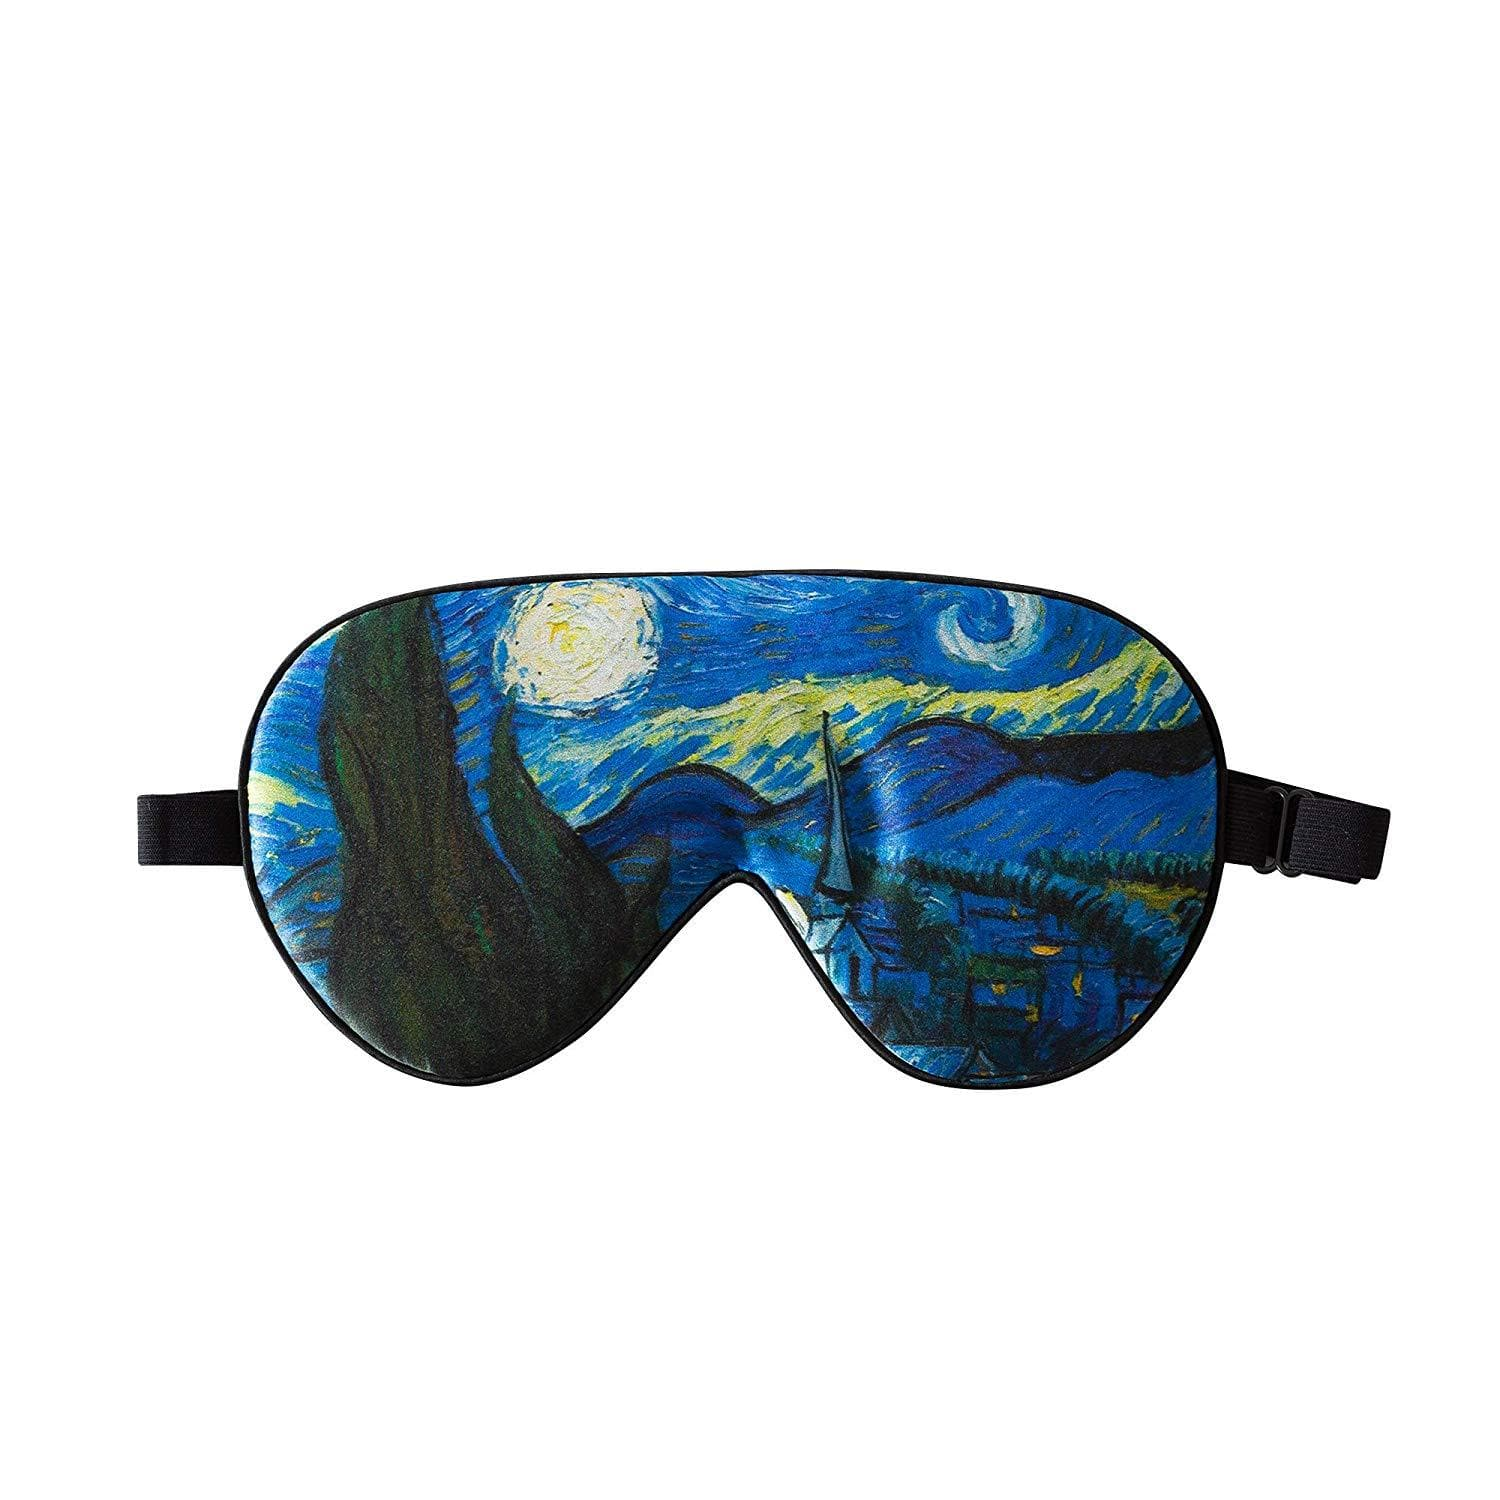 100% Natural Silk Sleep Mask Blindfold